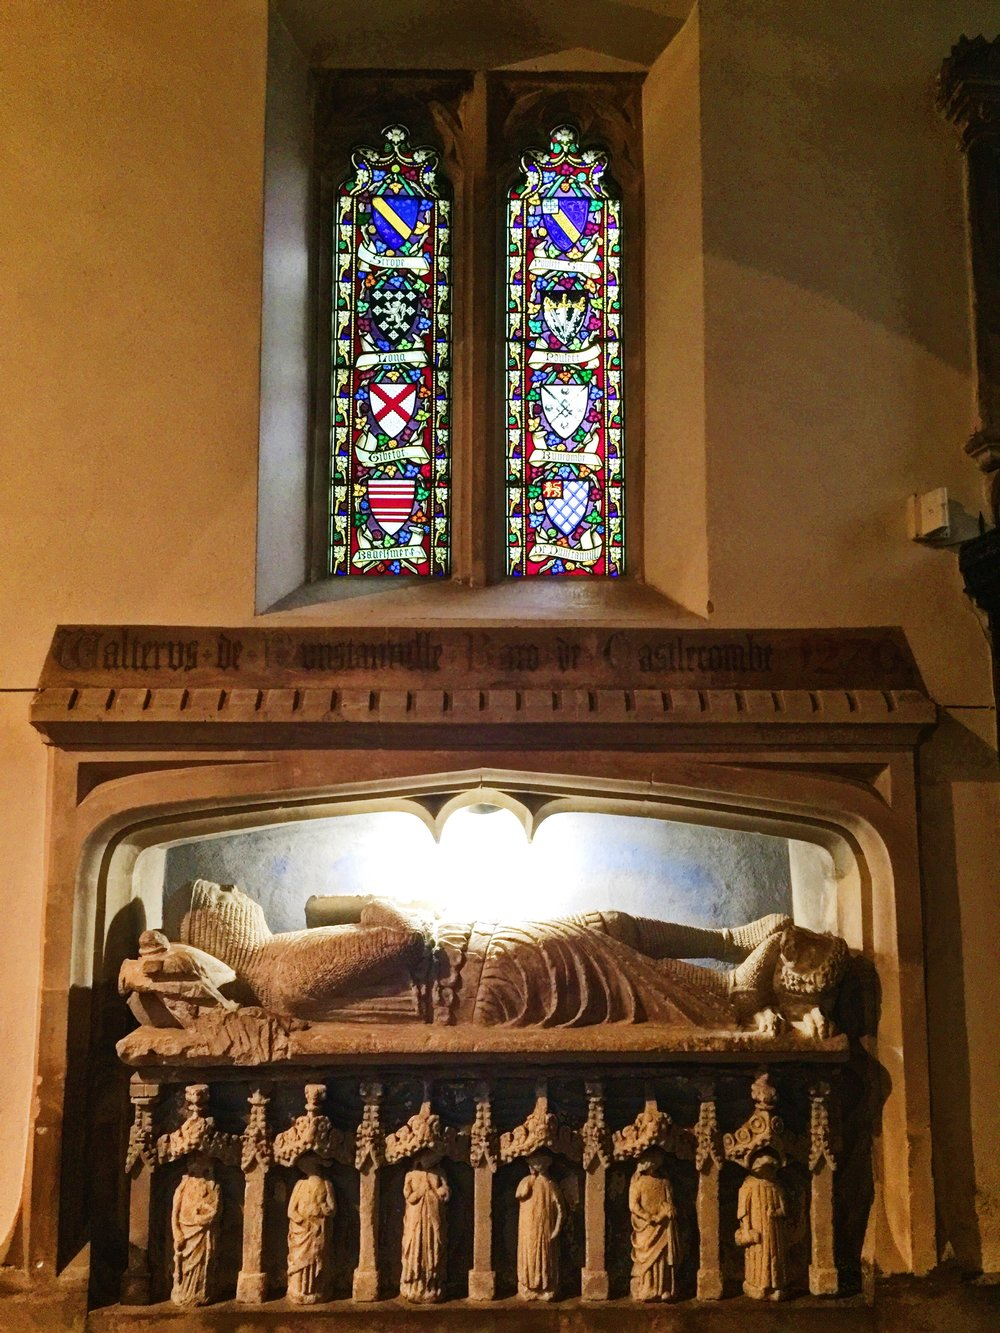 Sir Walter's effigy with 13th century dedication above. Stained glass with crests of important families in the region